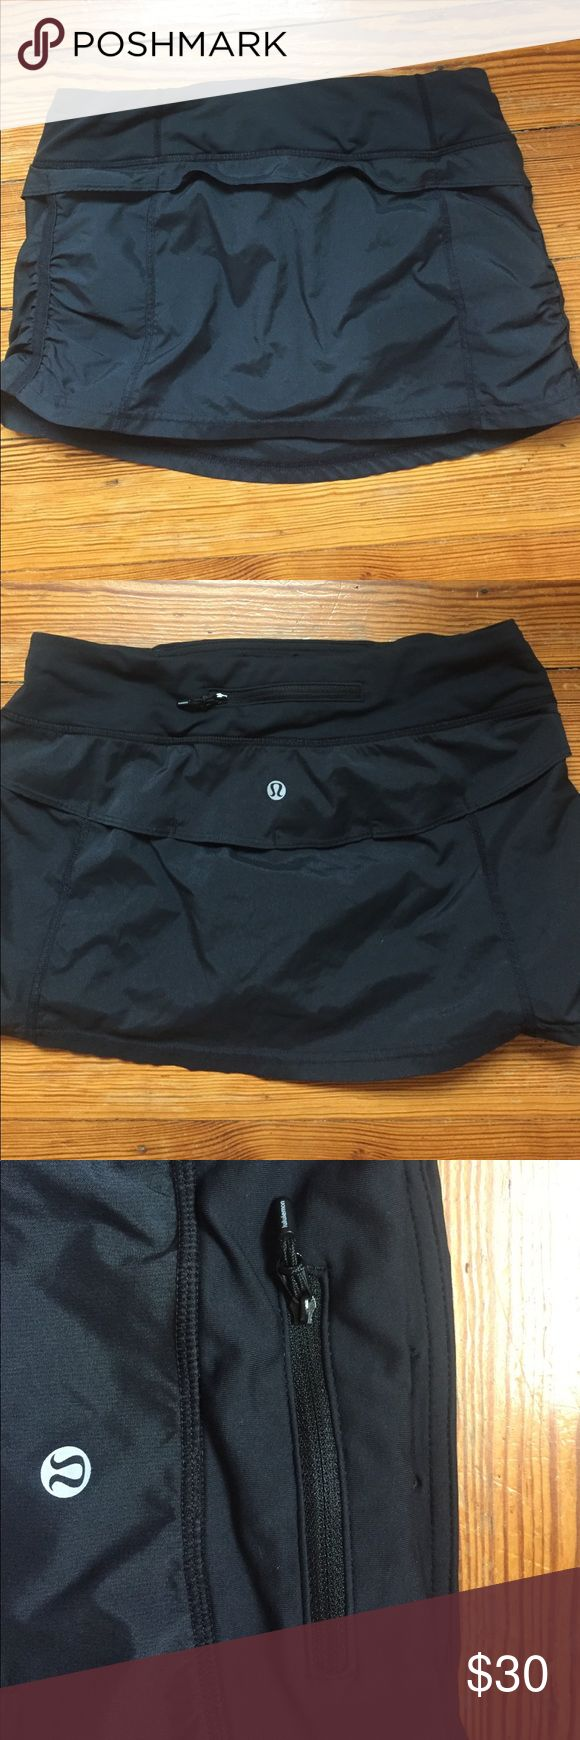 """Lululemon Run Jog skirt - black - size 4 Lululemon Run Jog skirt - black - size 4. Worn a few times for tennis, in perfect condition. I love this style of skirt - it's not frilly, it's more sleek and athletic looking. 12"""" from waist to bottom. lululemon athletica Skirts Mini"""